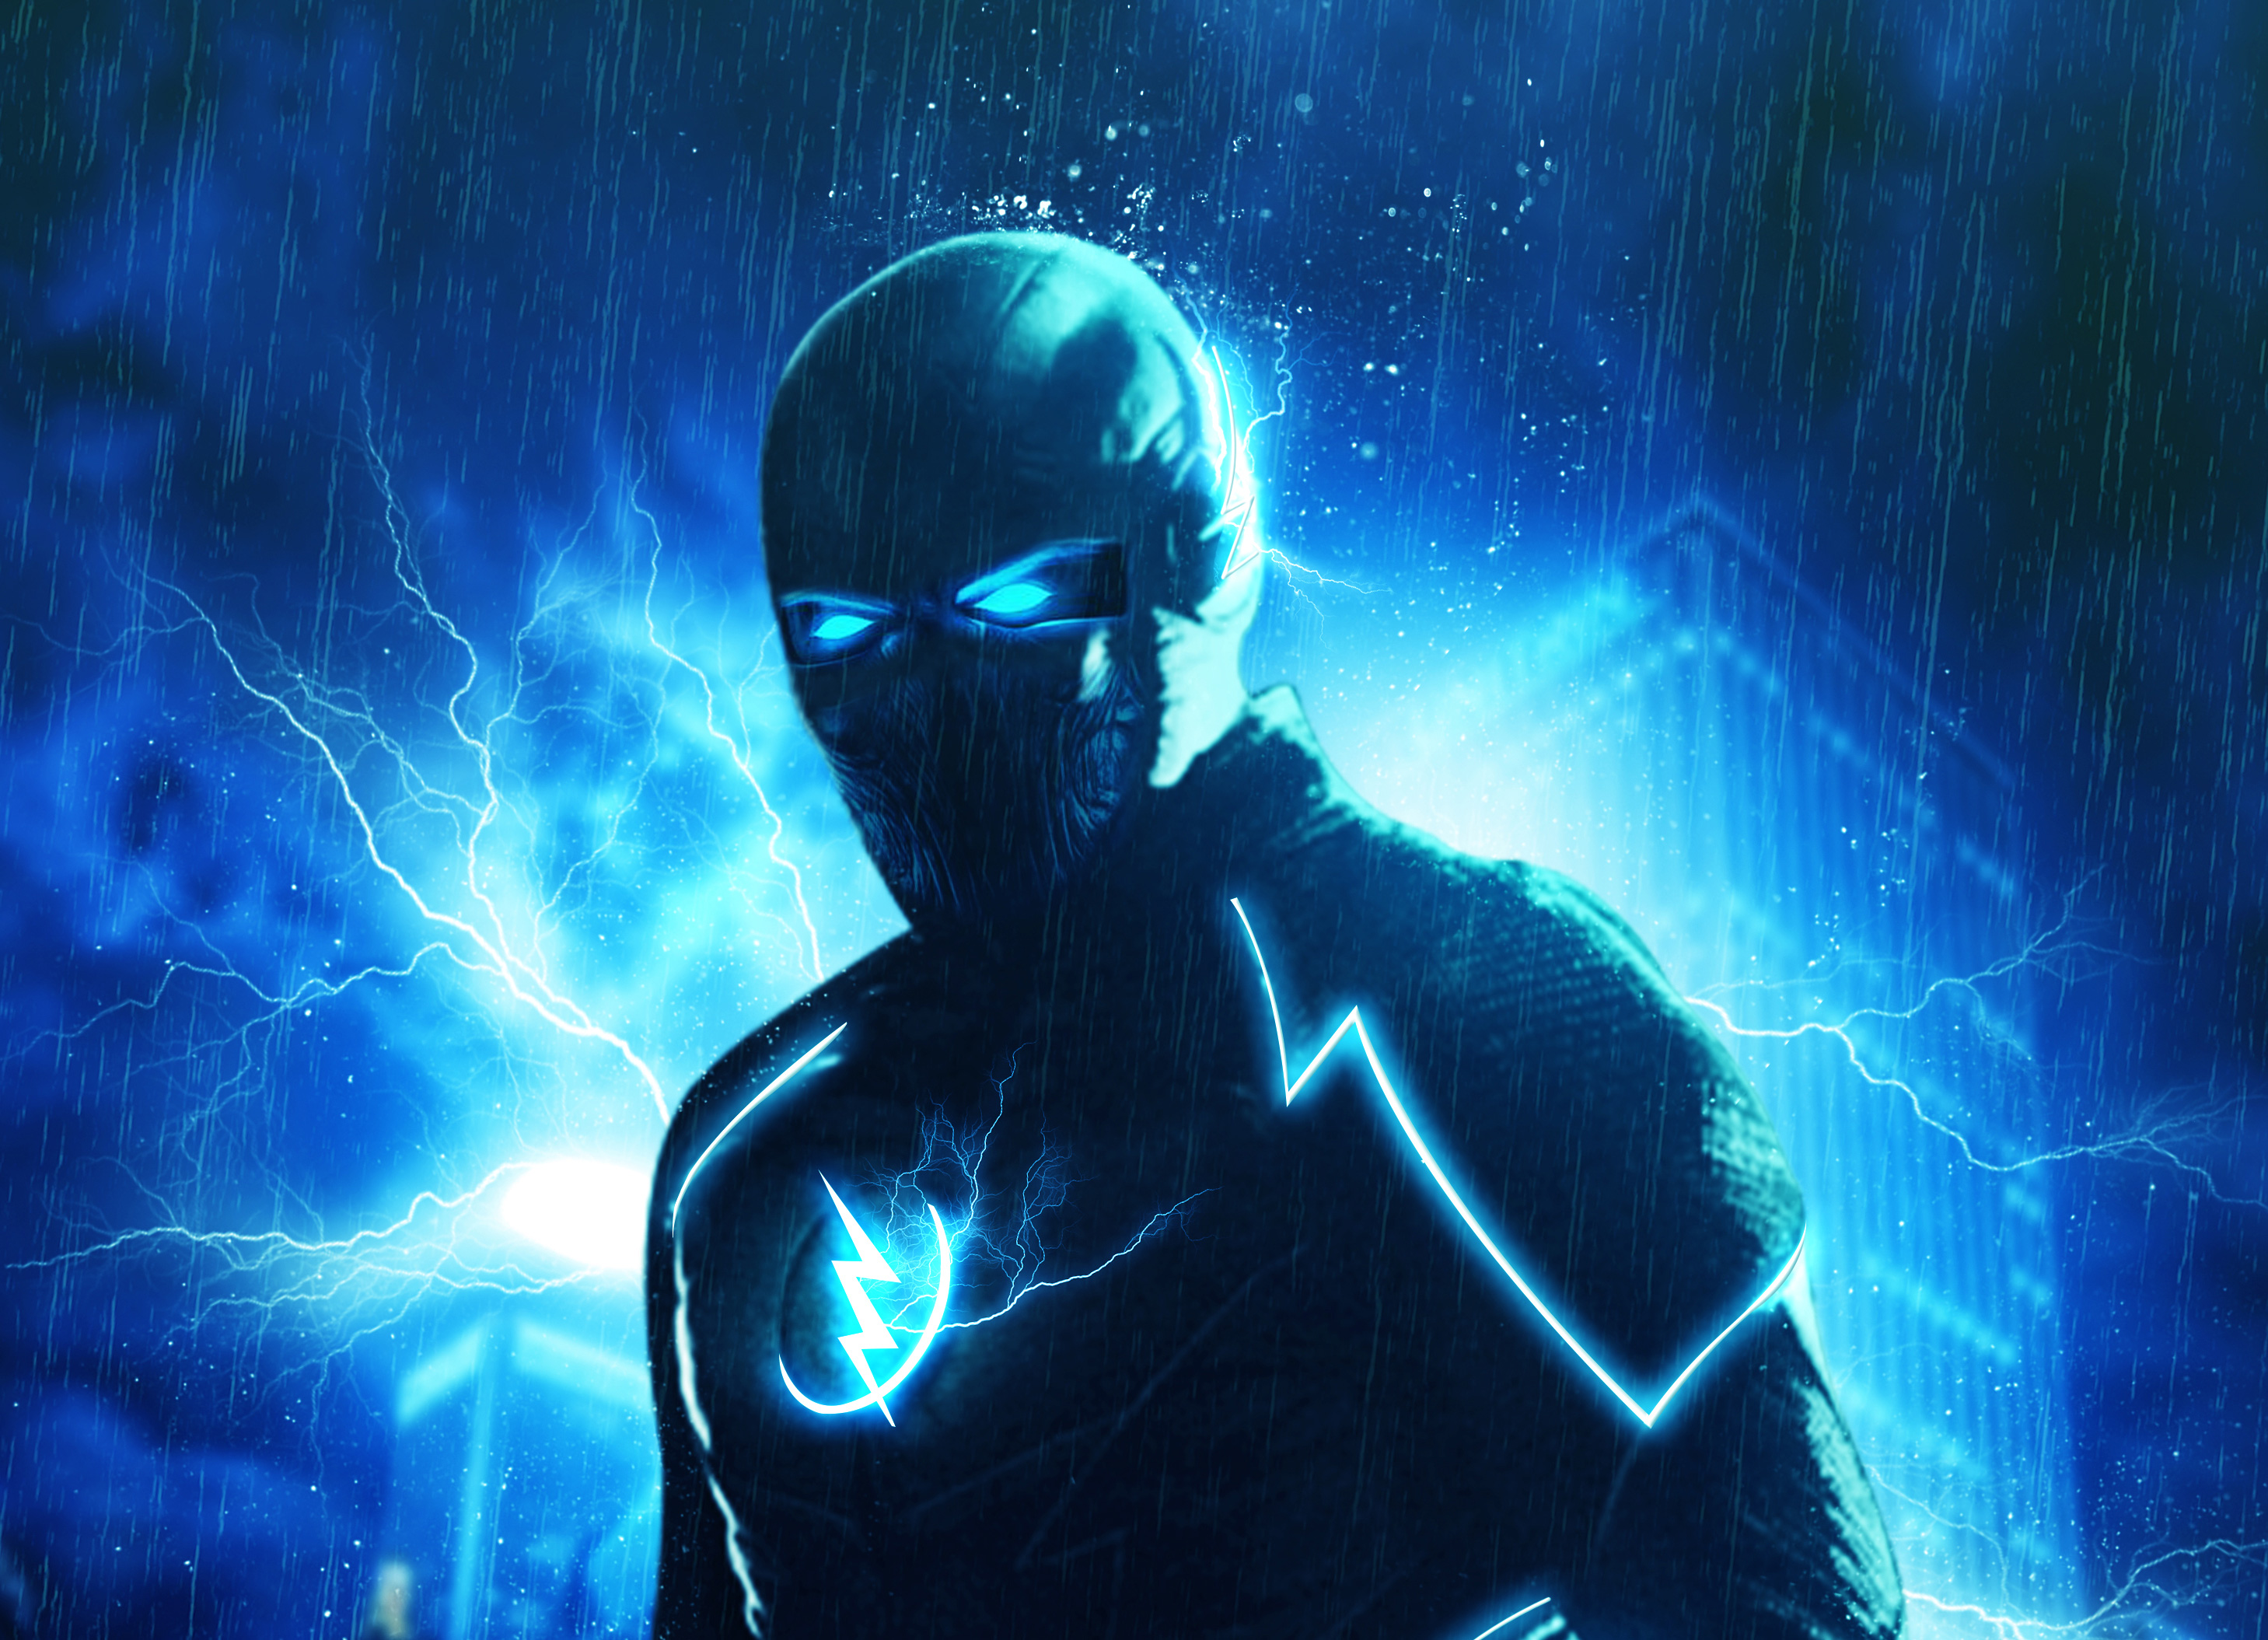 Zoom in flash artwork hd tv shows 4k wallpapers images backgrounds photos and pictures - The flash zoom wallpaper ...